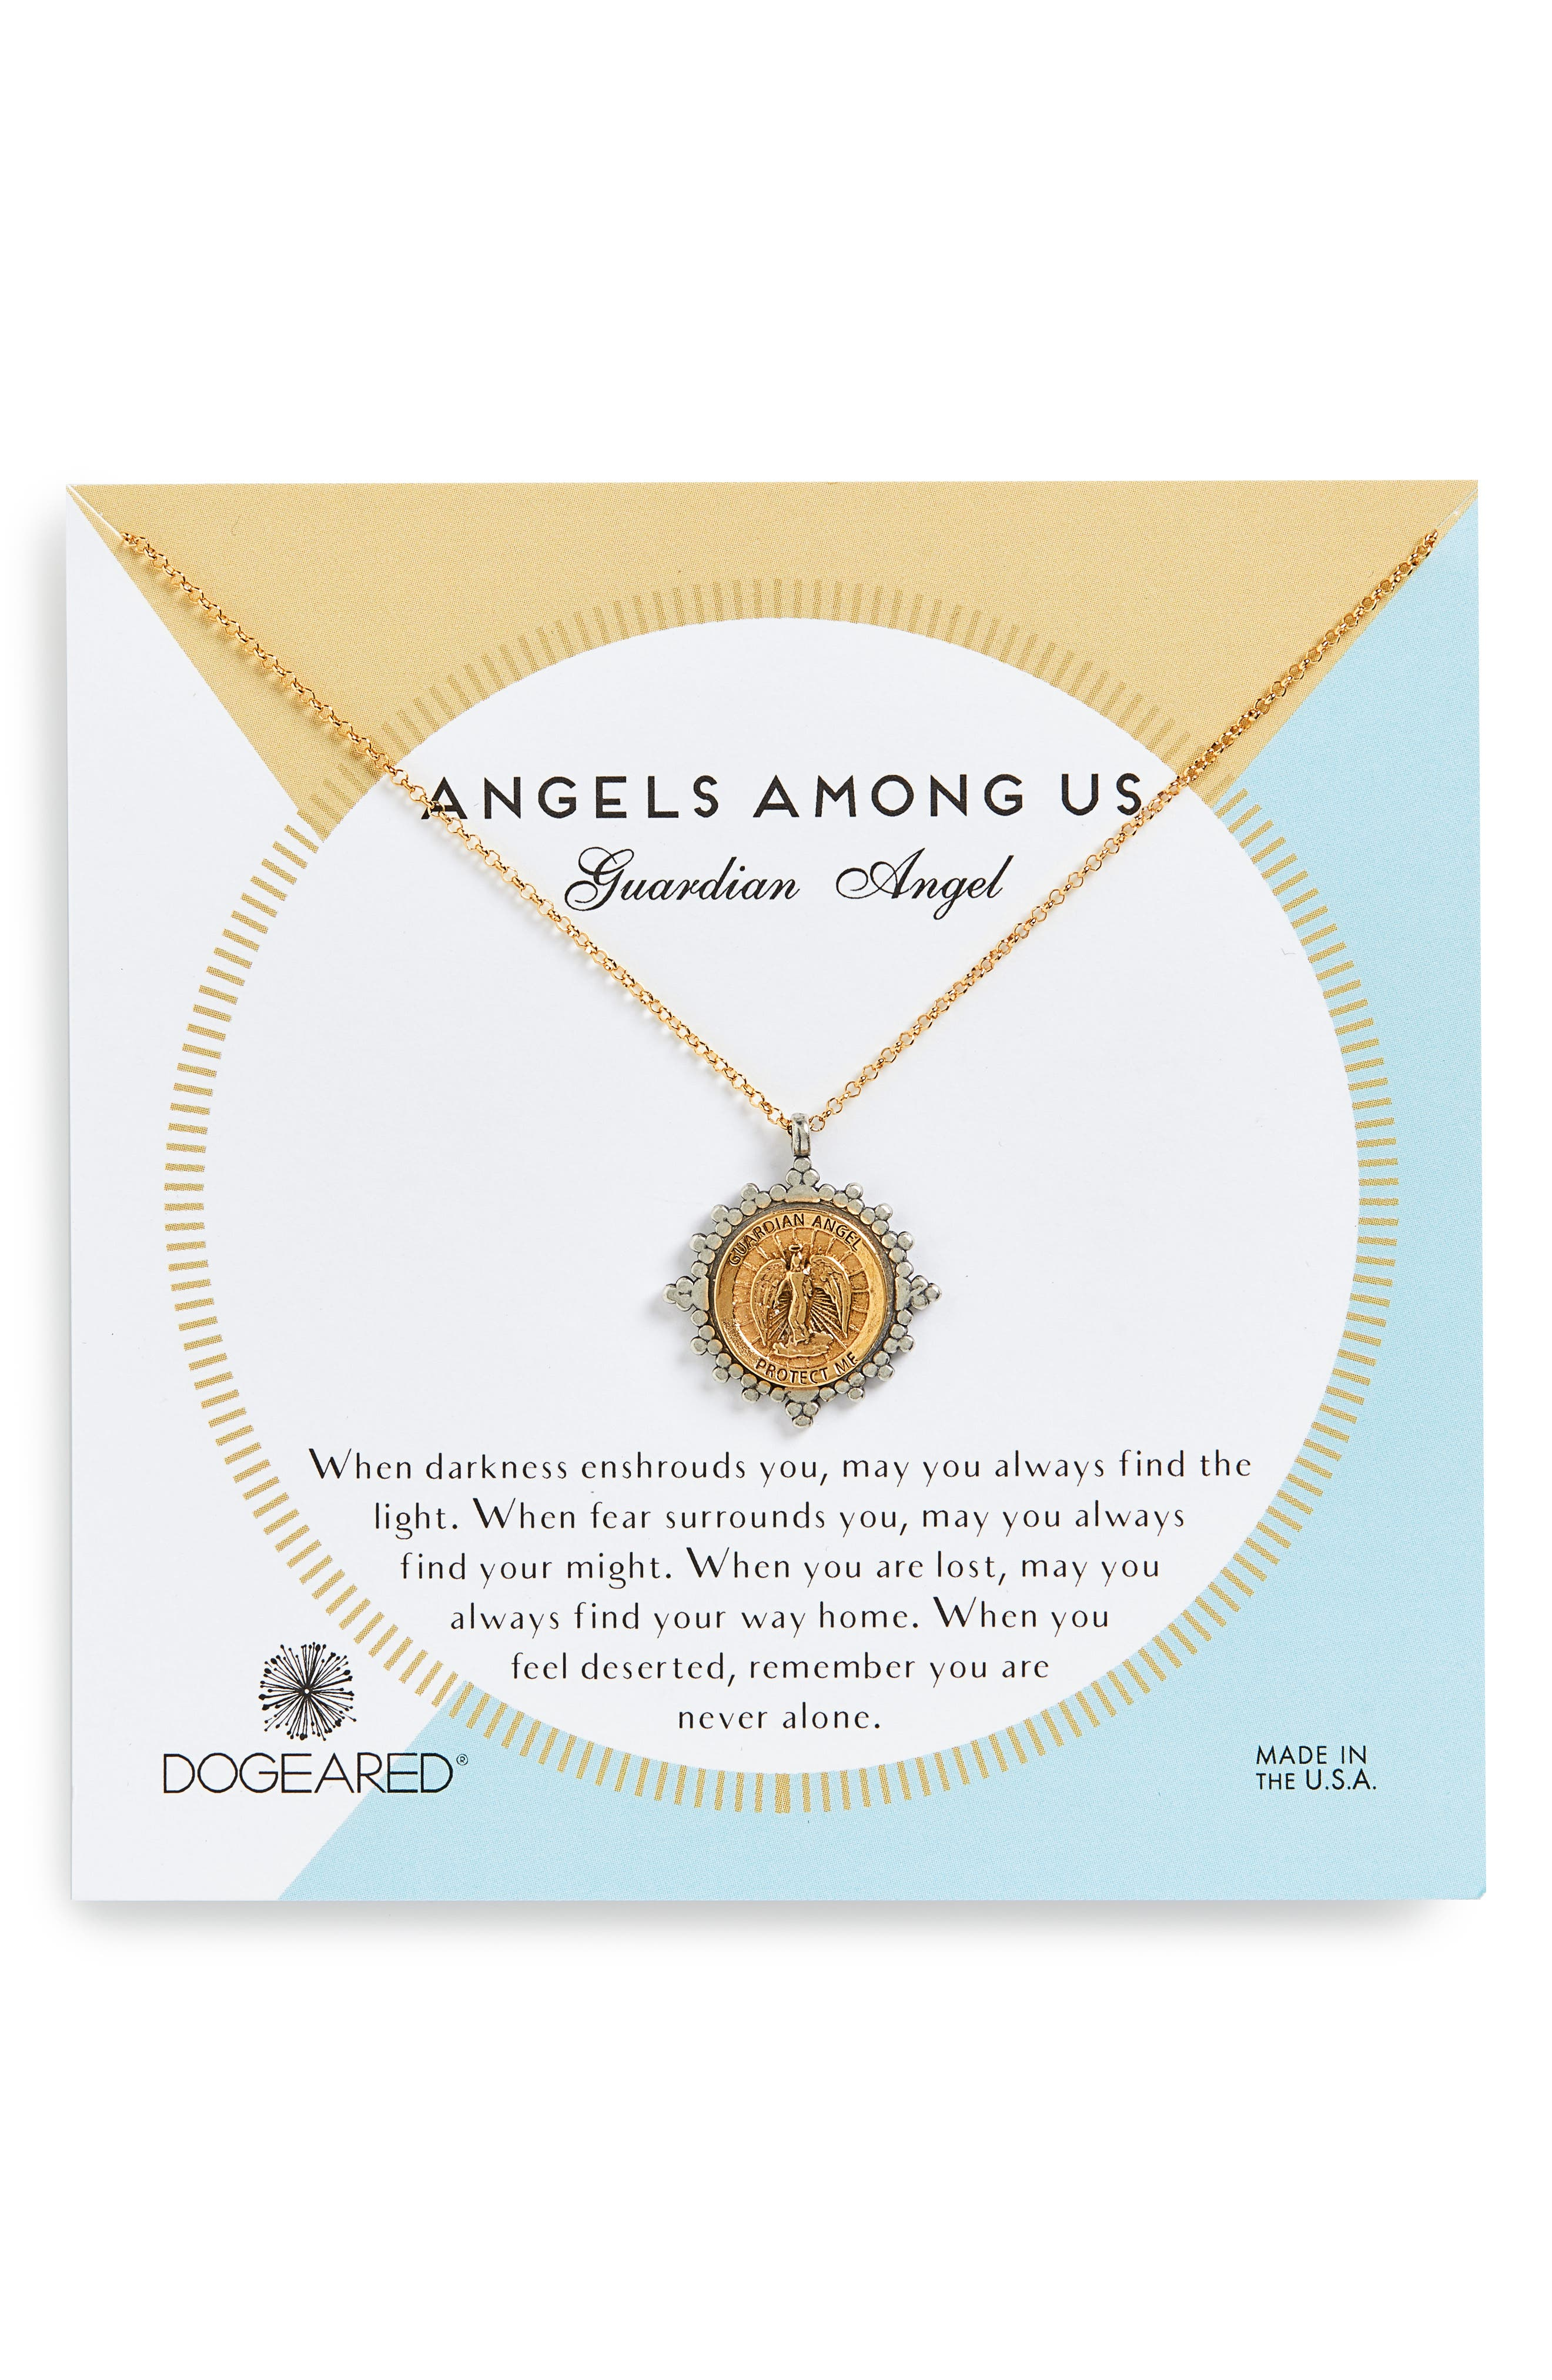 DOGEARED Angels Among Us Guardian Angel Pendant Necklace in Gold